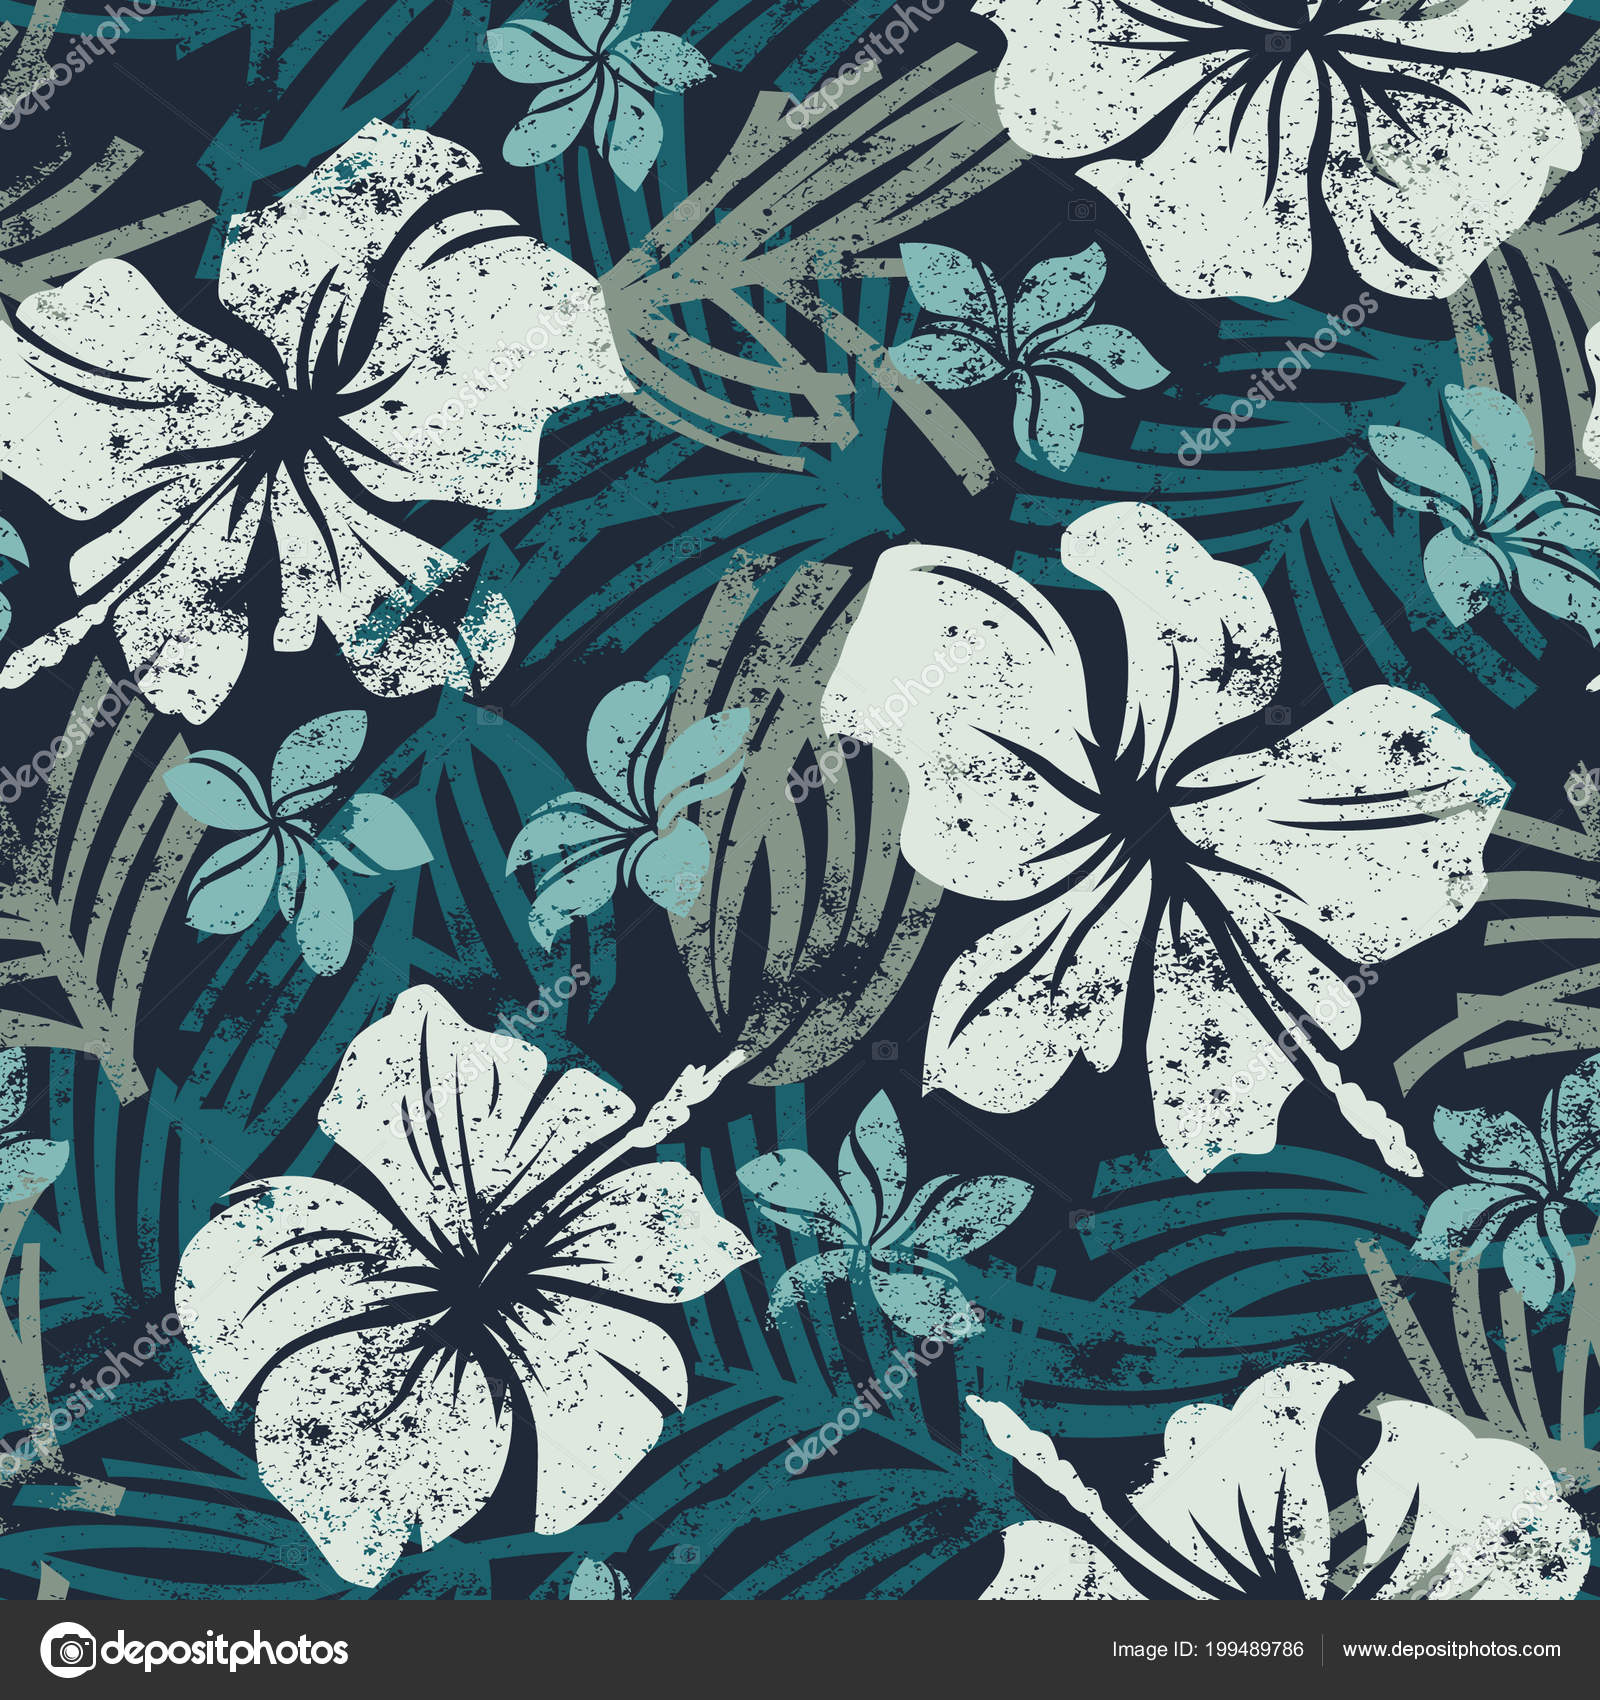 Grunge Hibiscus Flowers Seamless Pattern Vintage Tropical Abstract